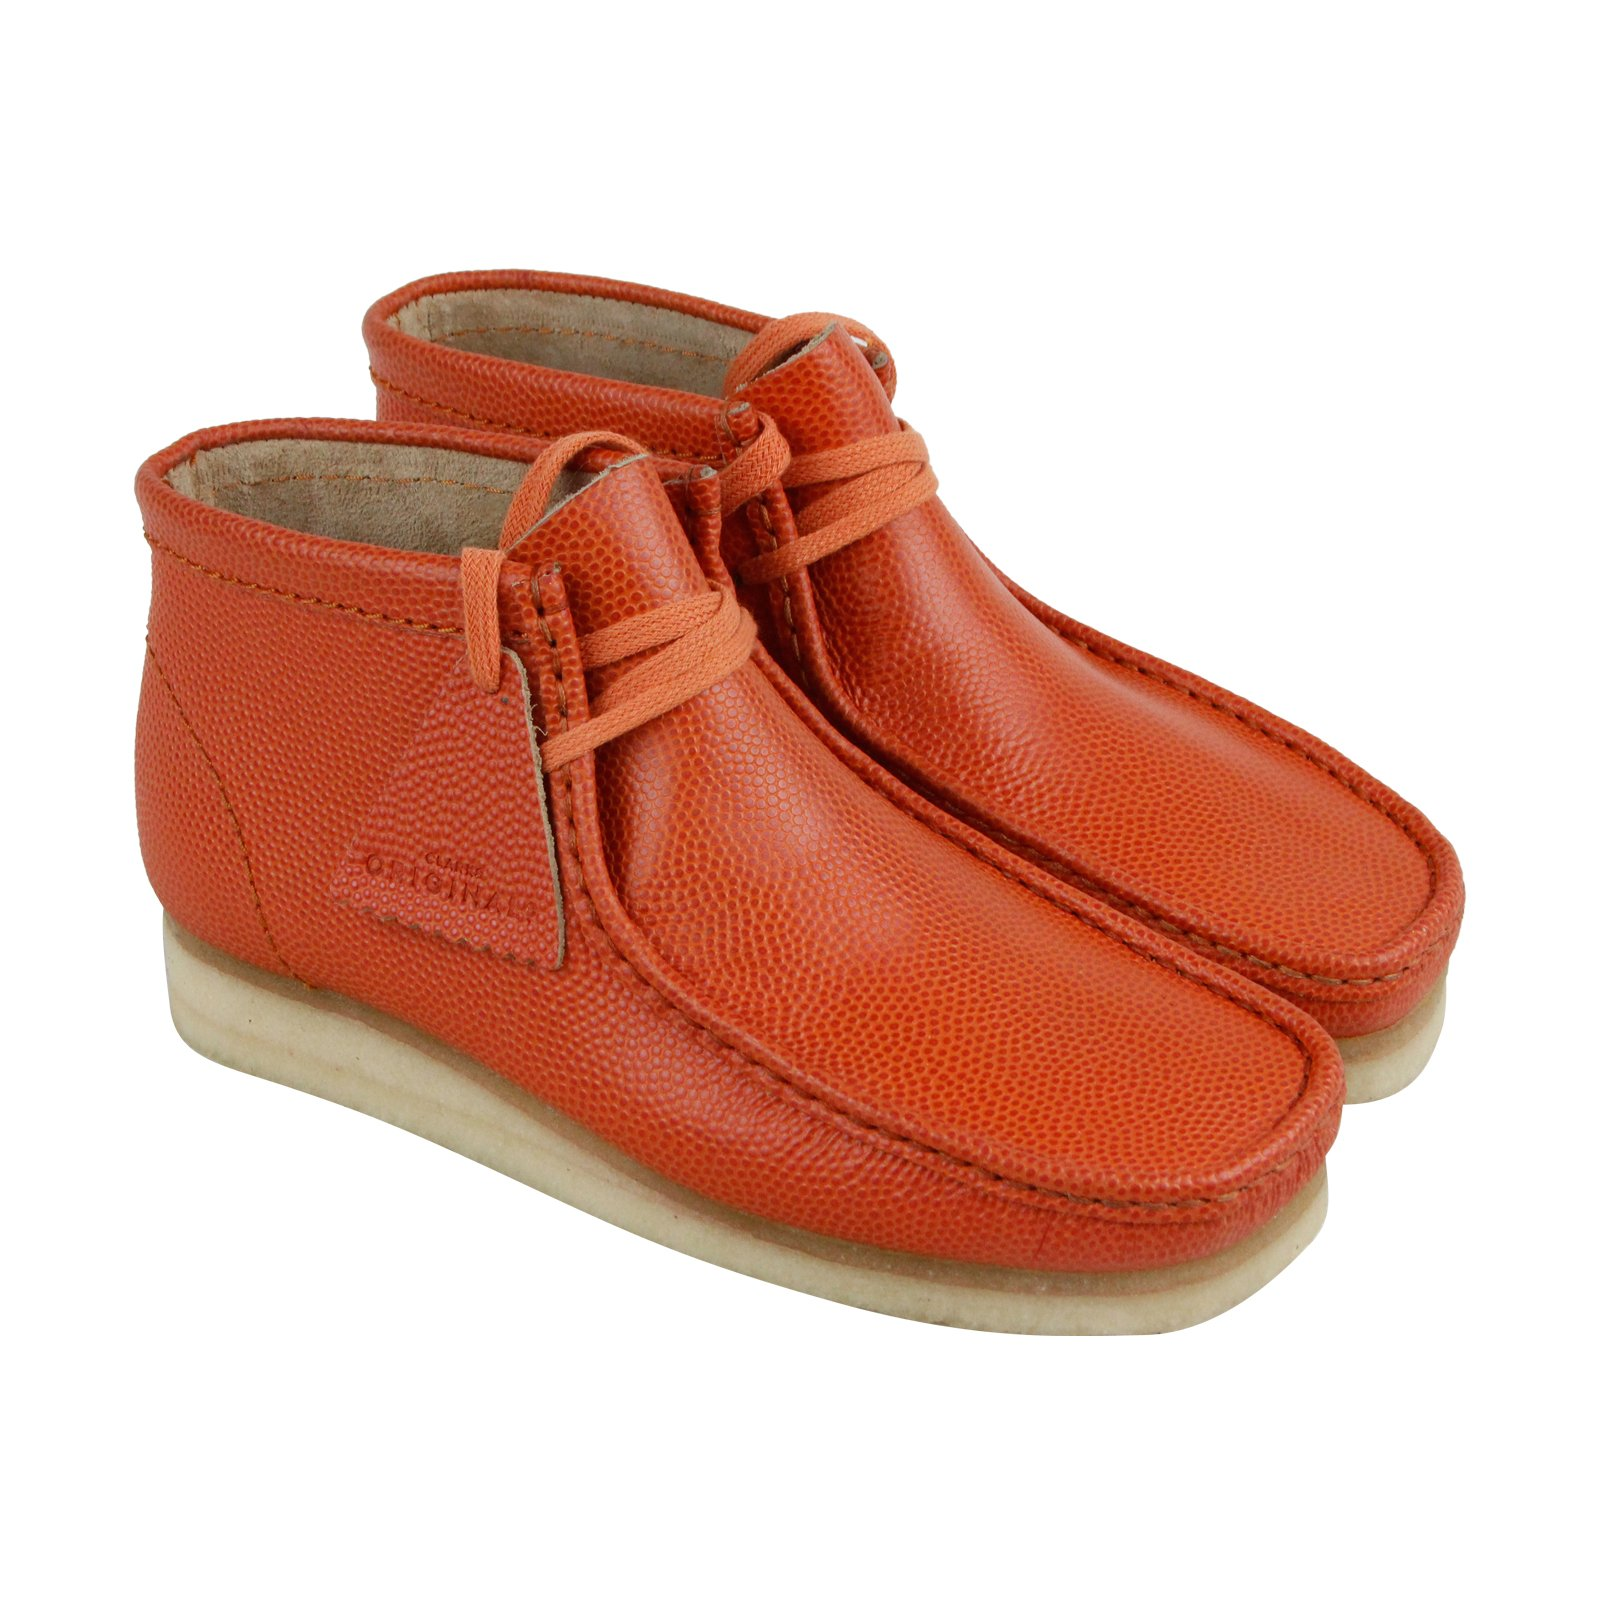 CLARKS Wallabee Boot Mens Orange Leather Casual Dress Lace Up Chukkas Shoes 7